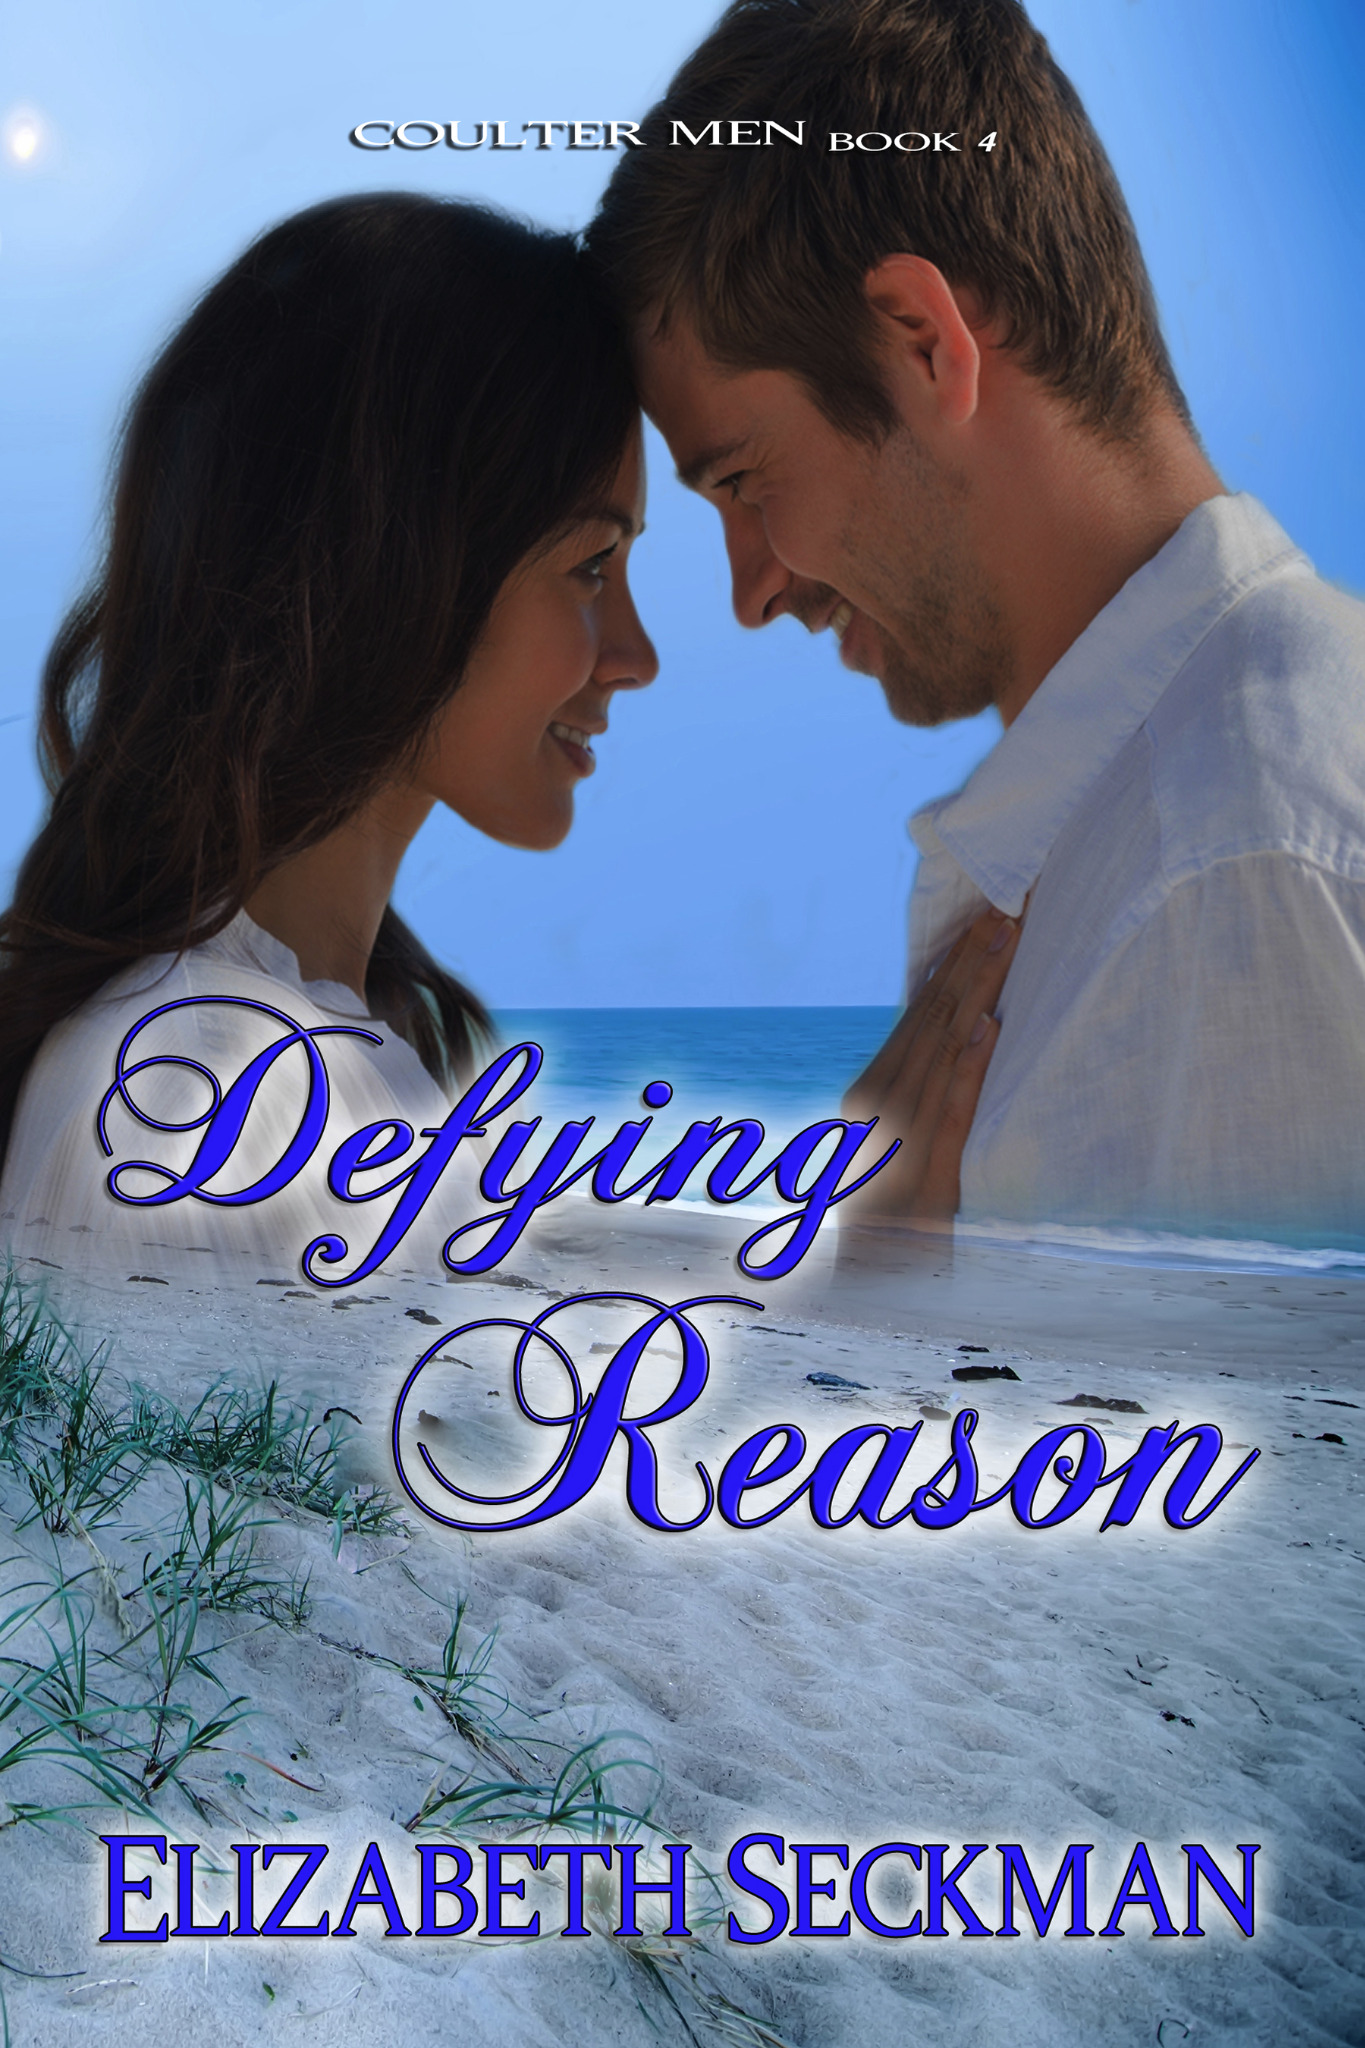 Defying Reason - Coulter Men Book 4